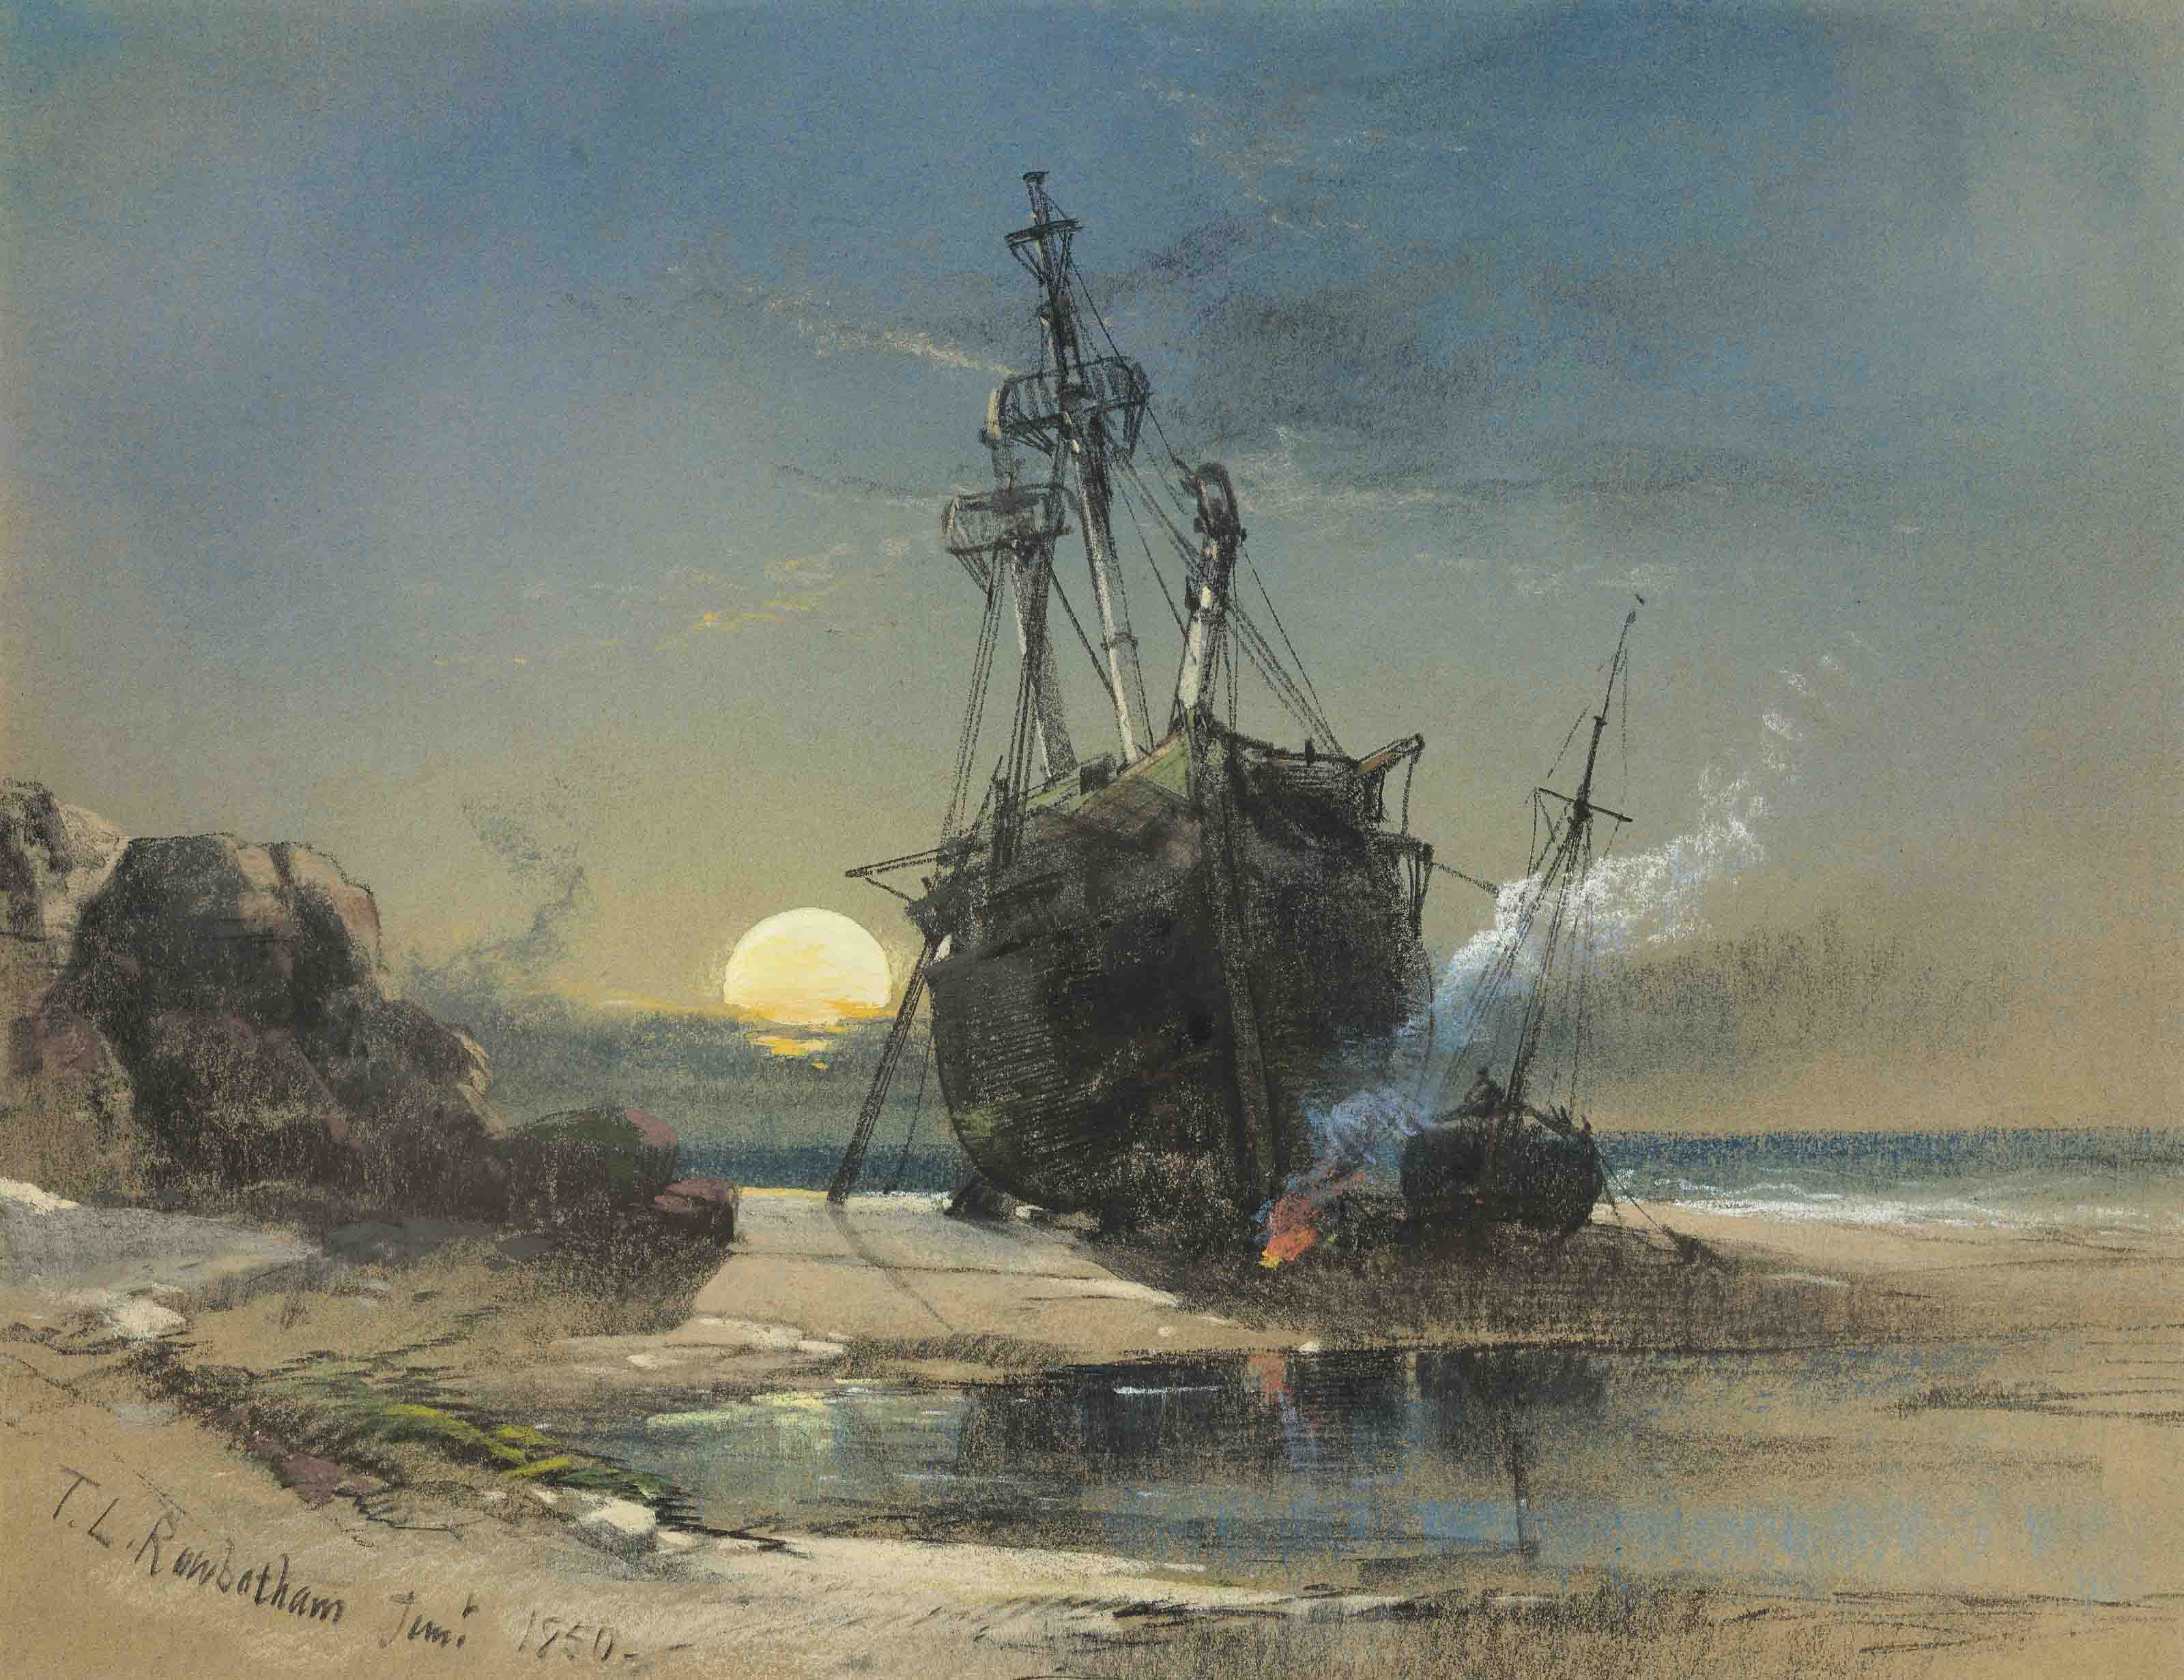 Shipping run aground, with figures and a fire, at moonlight